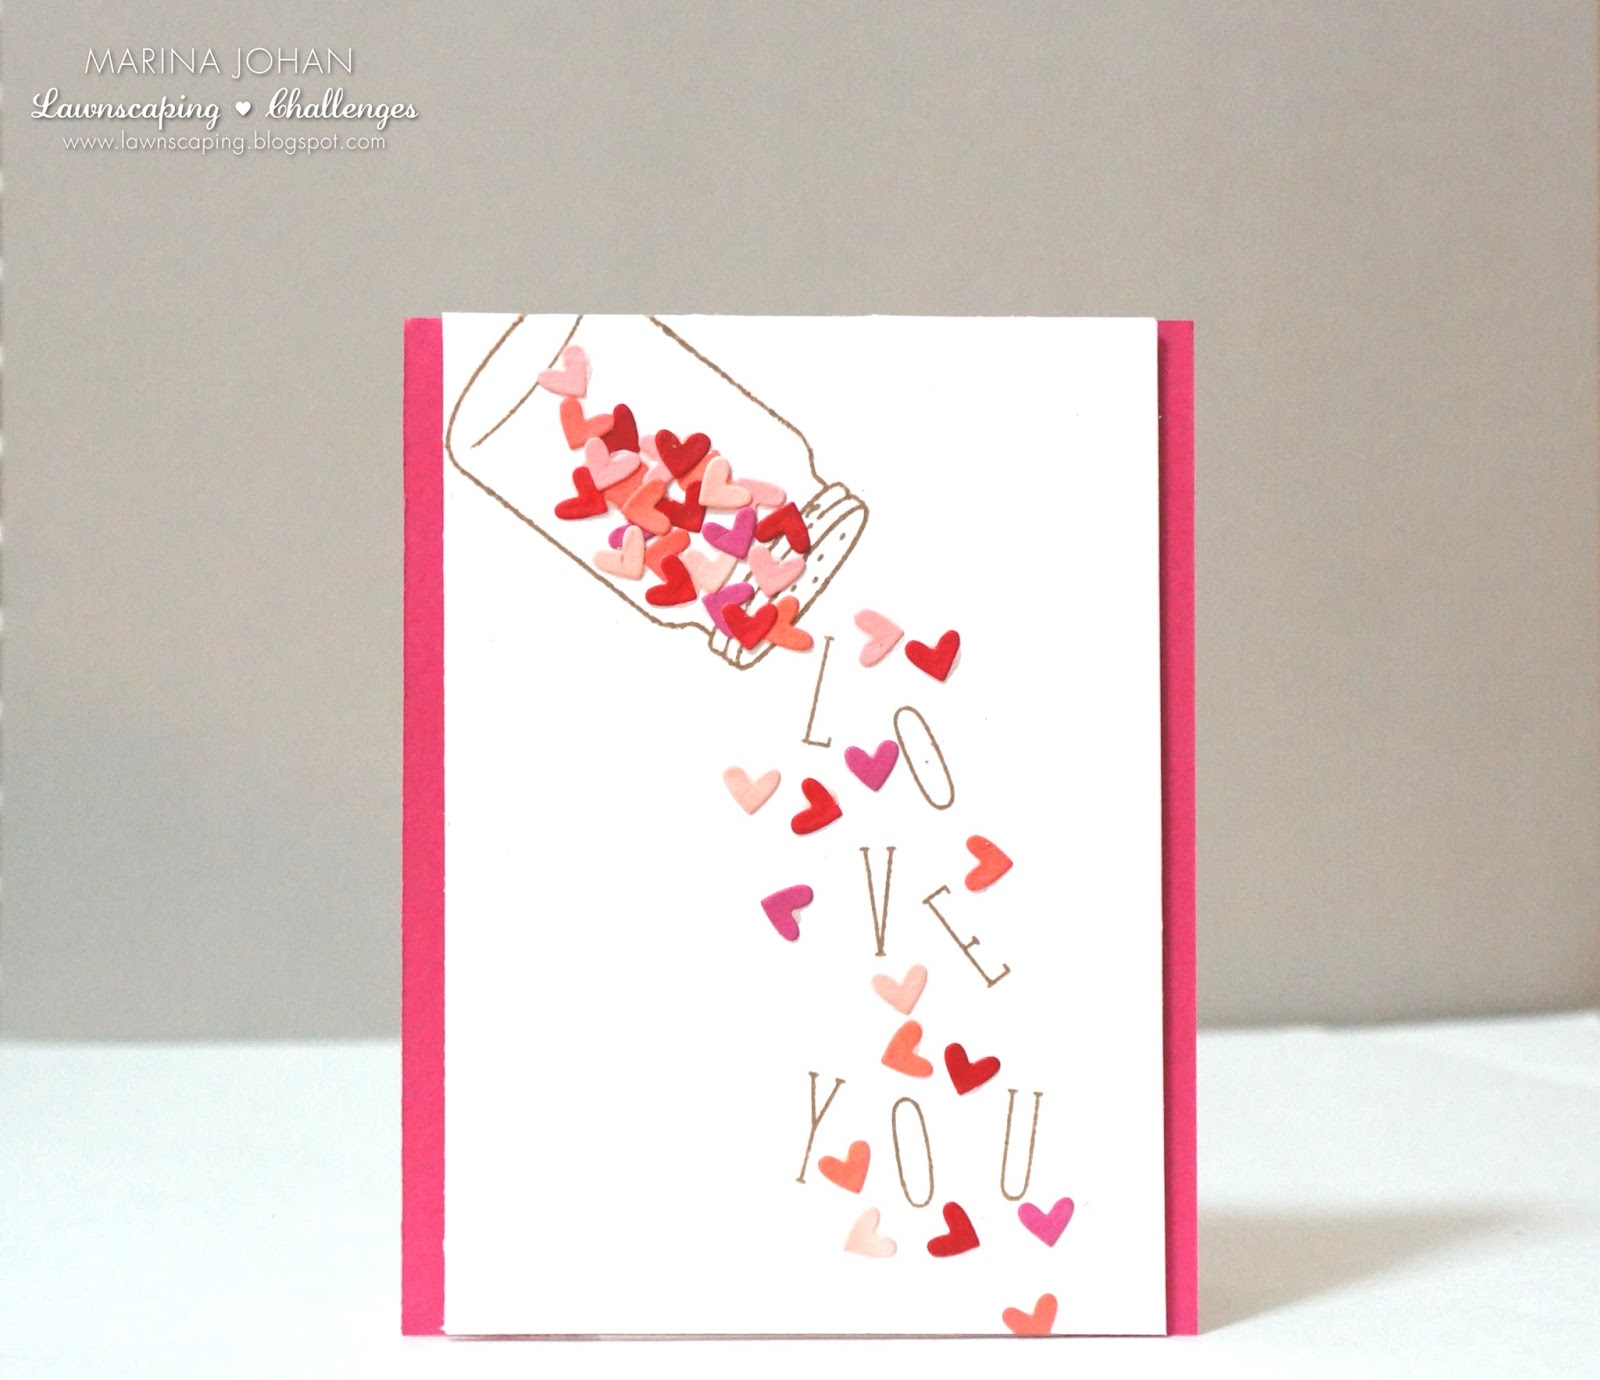 Marvelous Give Out Some Handmade Love With These 21 Diy Valentines Day Cards Personalised Birthday Cards Paralily Jamesorg